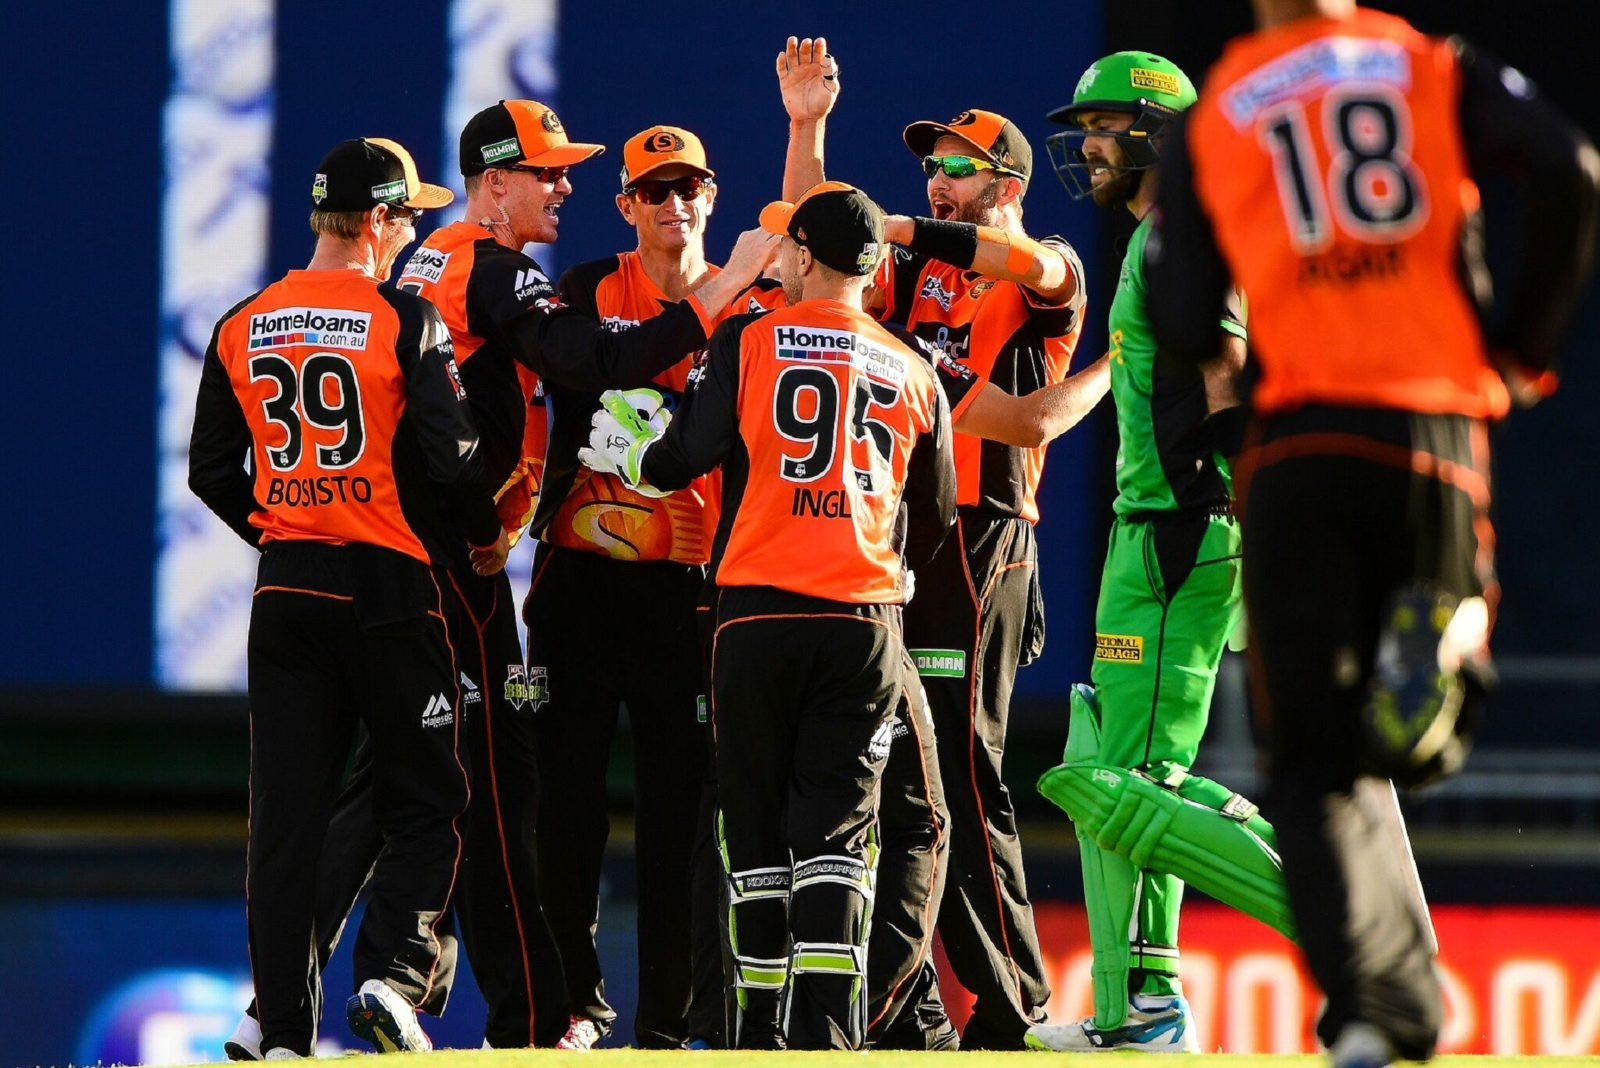 Big Bash League - Perth Scorchers vs Melbourne Stars, Burswood, Western Australia